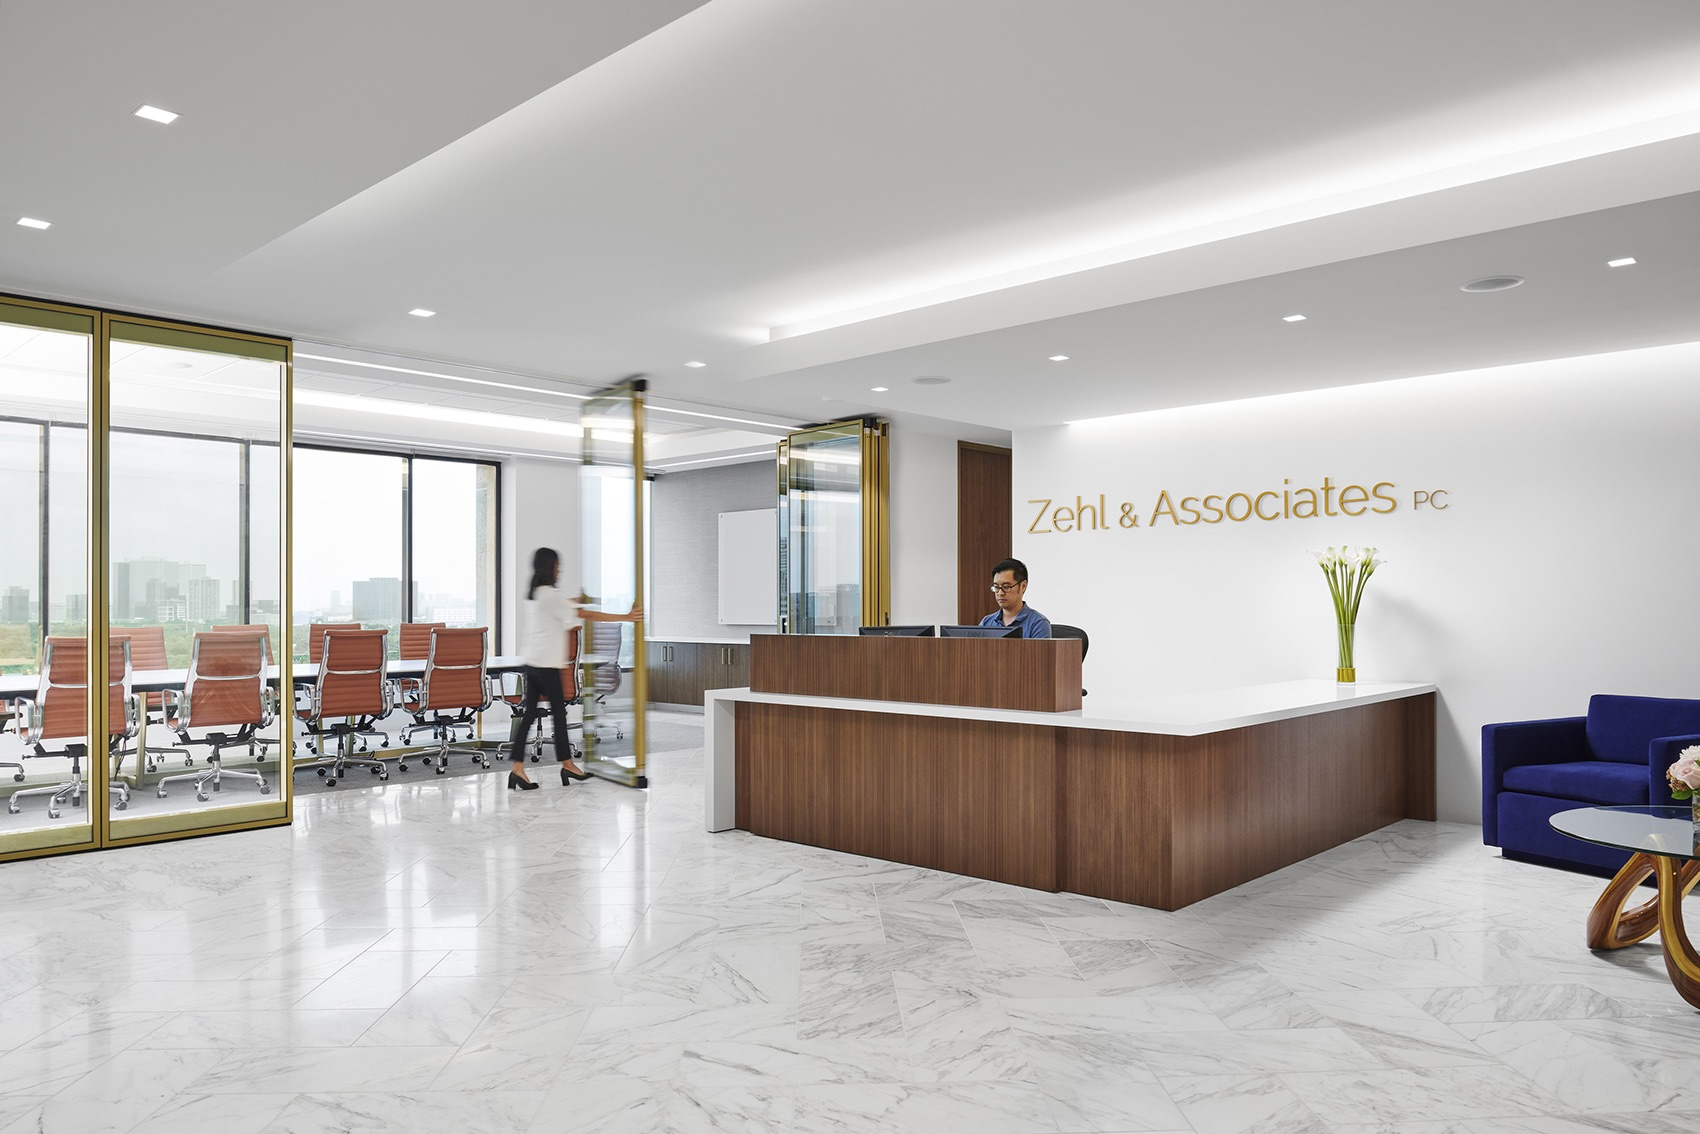 Inside Zehl & Associates' Elegant Houston Office